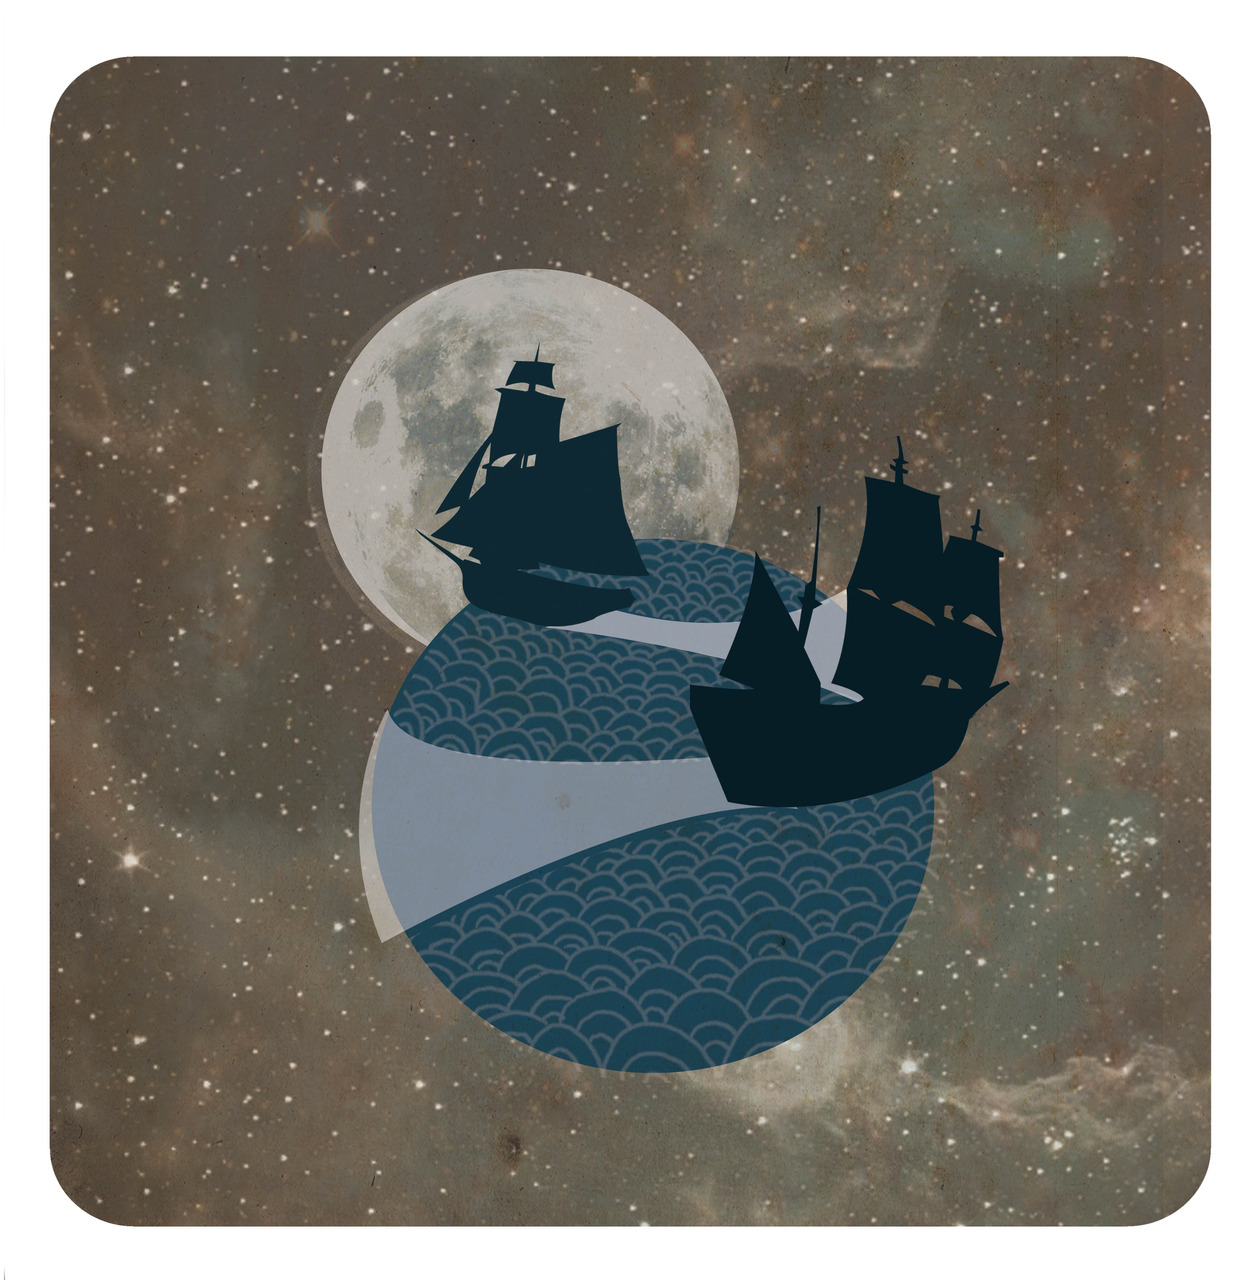 'Like ships that pass in the night'   Another version of this idiom for my illustrated dictionary.